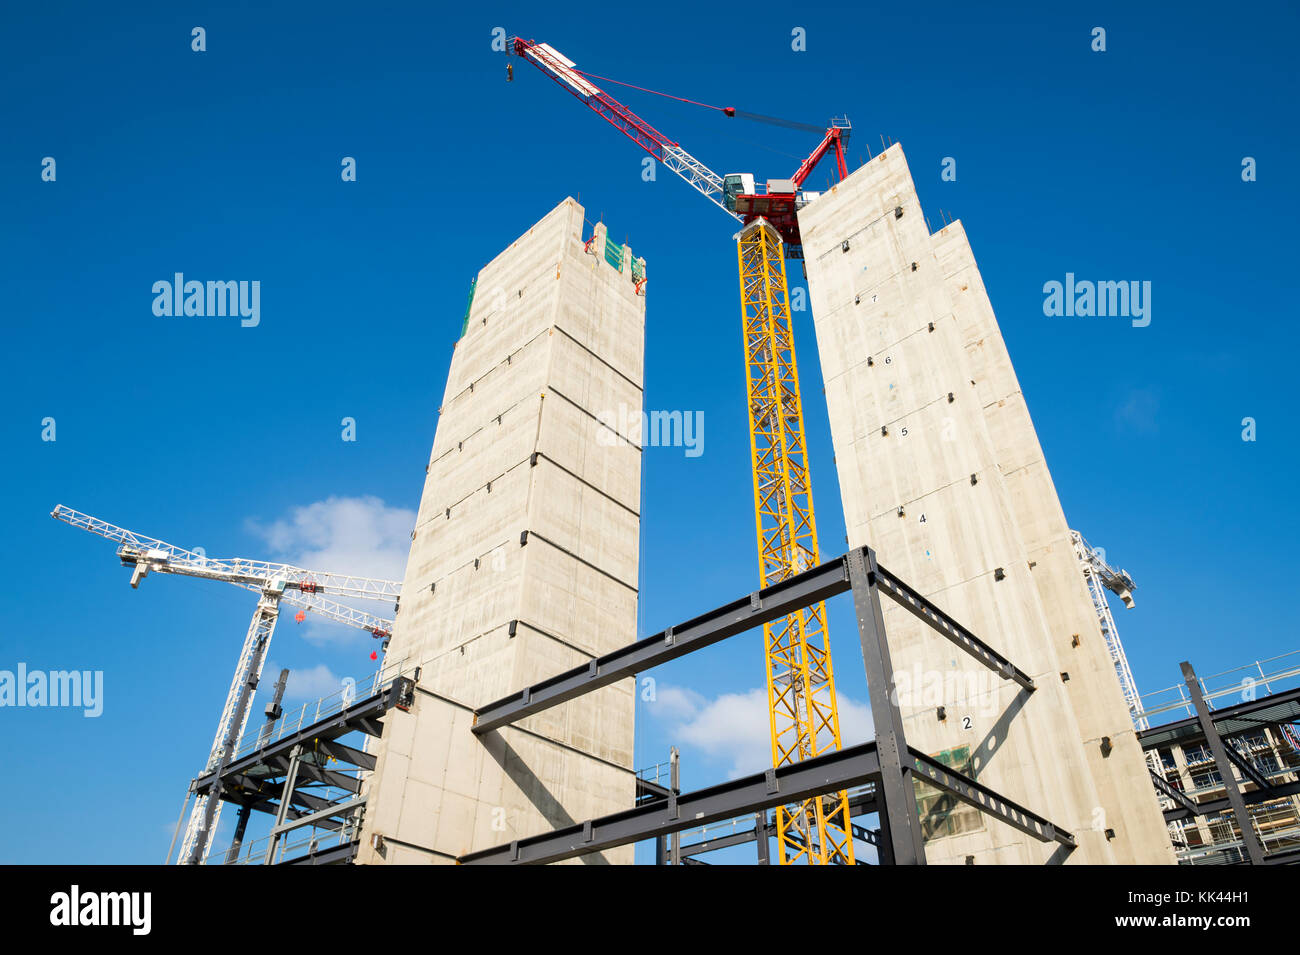 Modern hi-rise towers construction site with cranes under bright blue sky - Stock Image